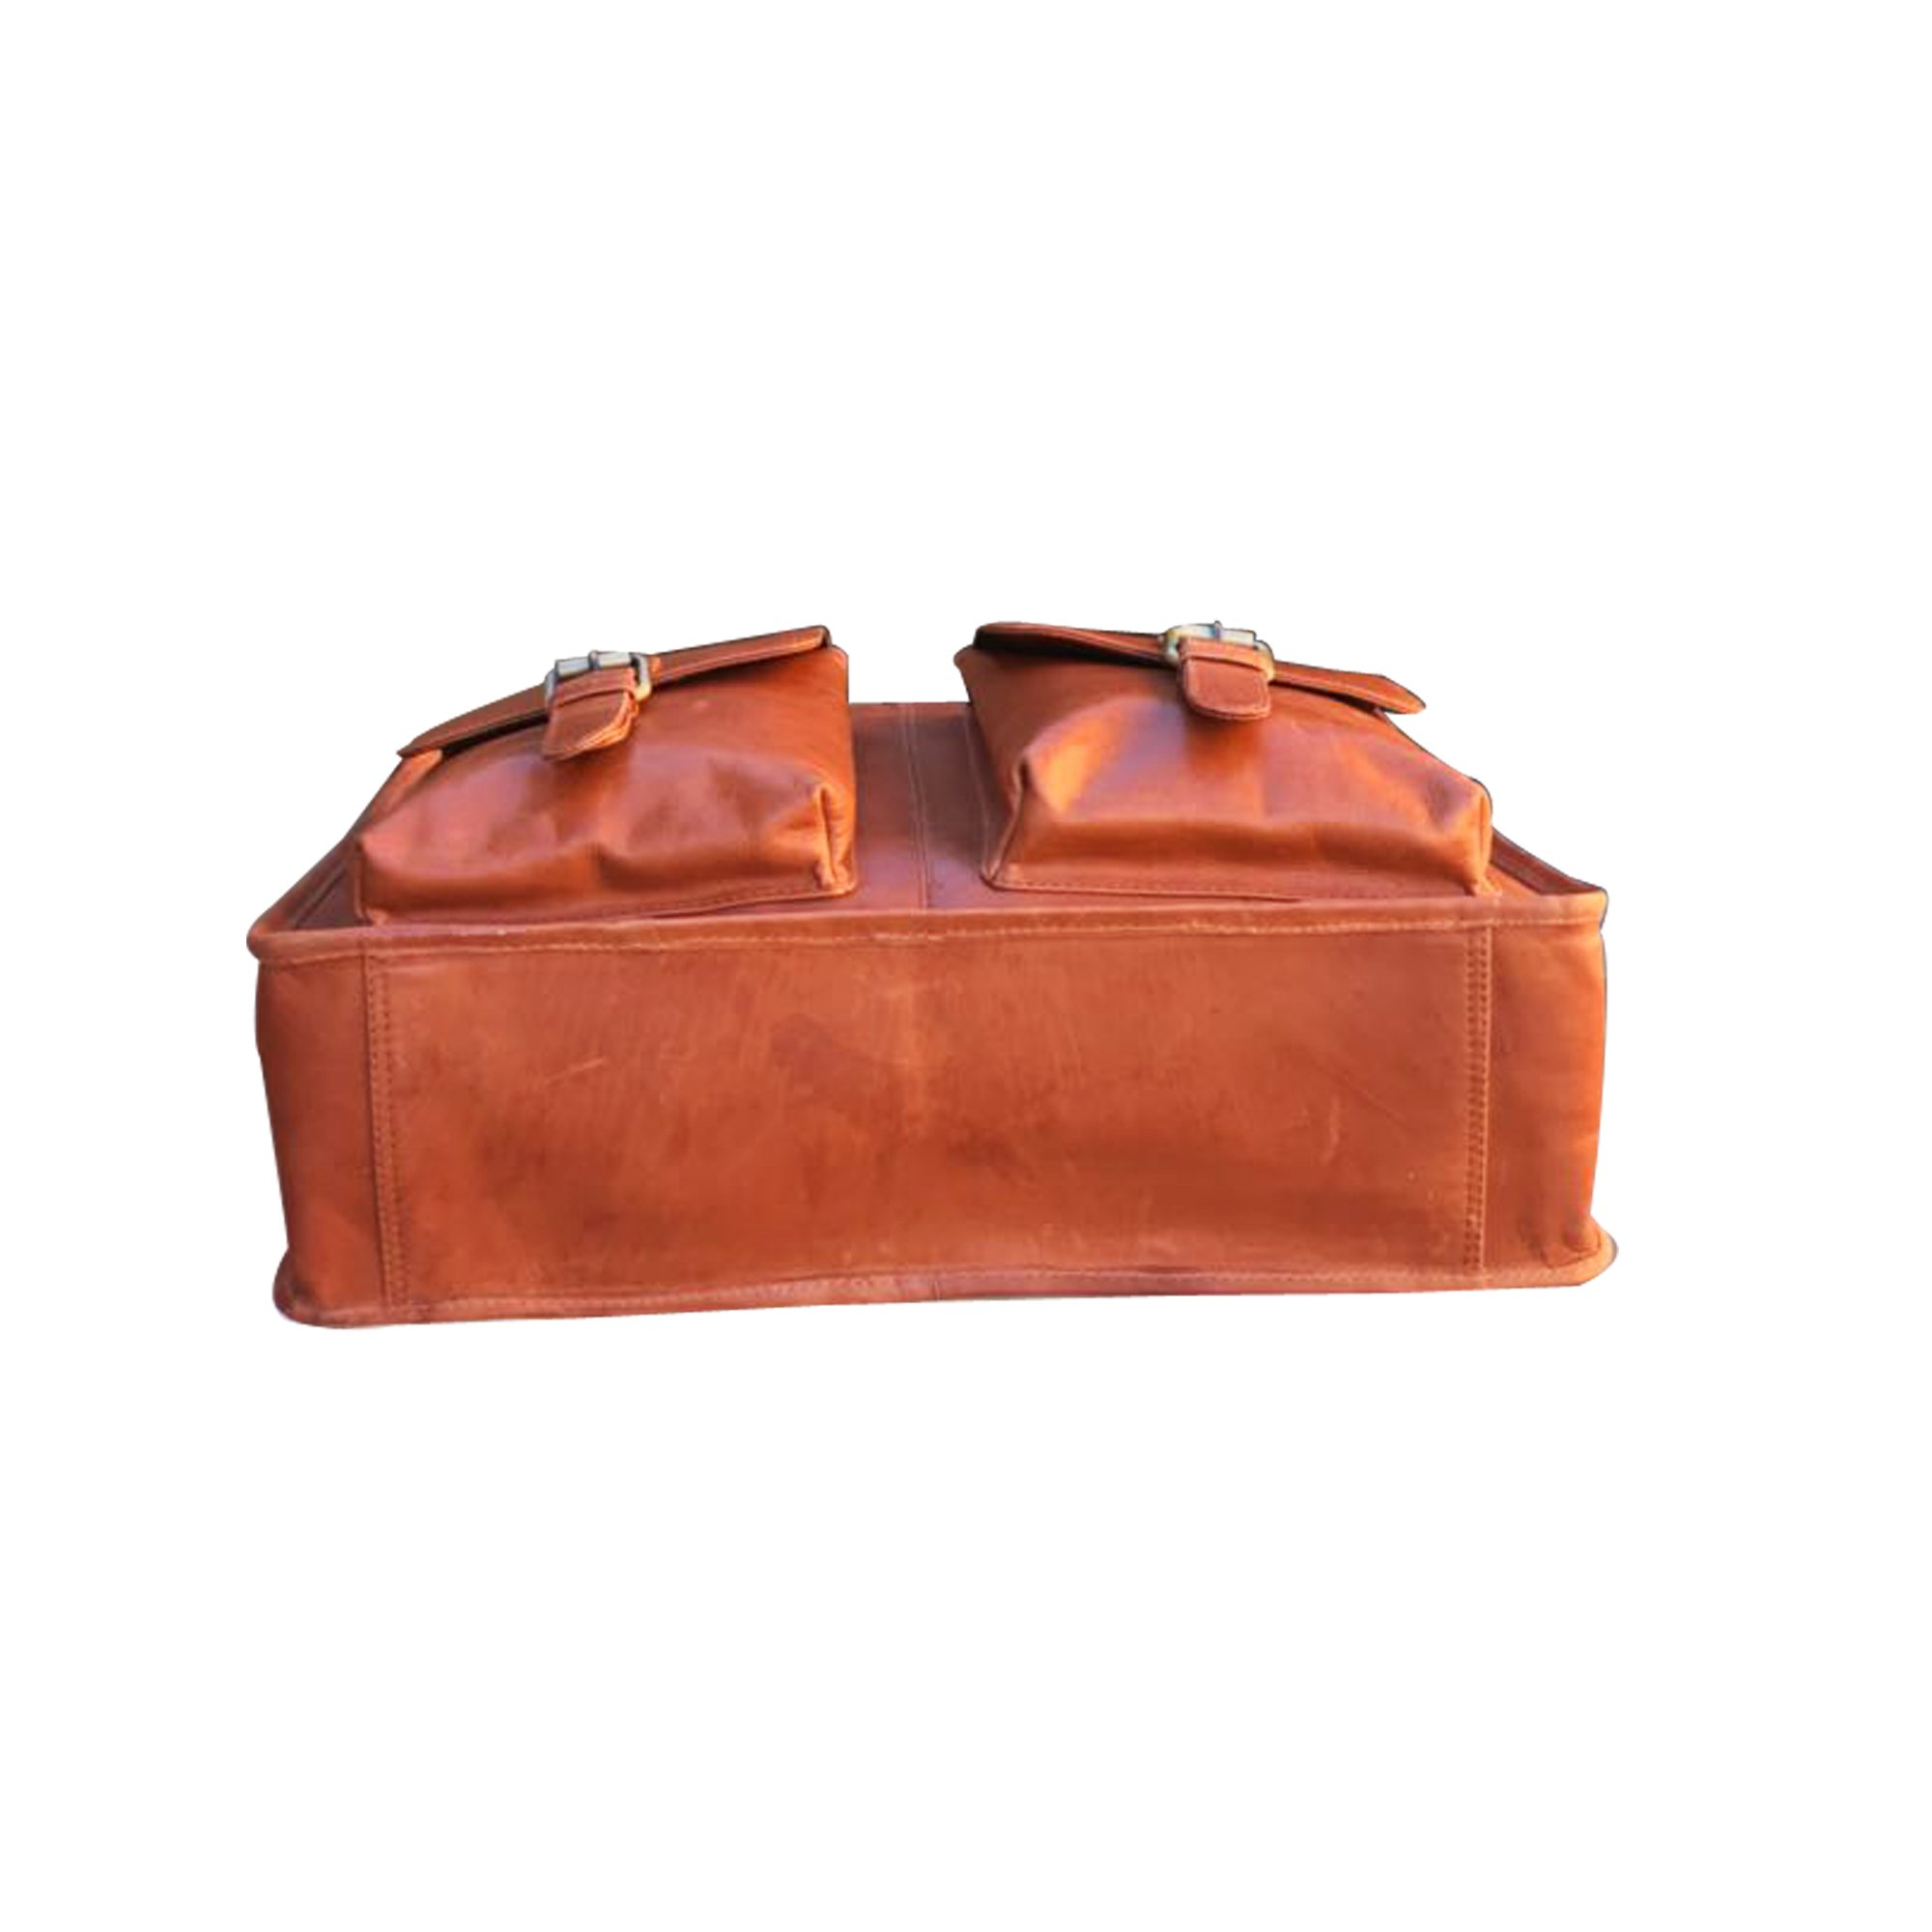 Finelaer Leather Laptop Computer Messenger Bag with Pockets for laptops Macbooks 14'' Brown by FINELAER (Image #5)